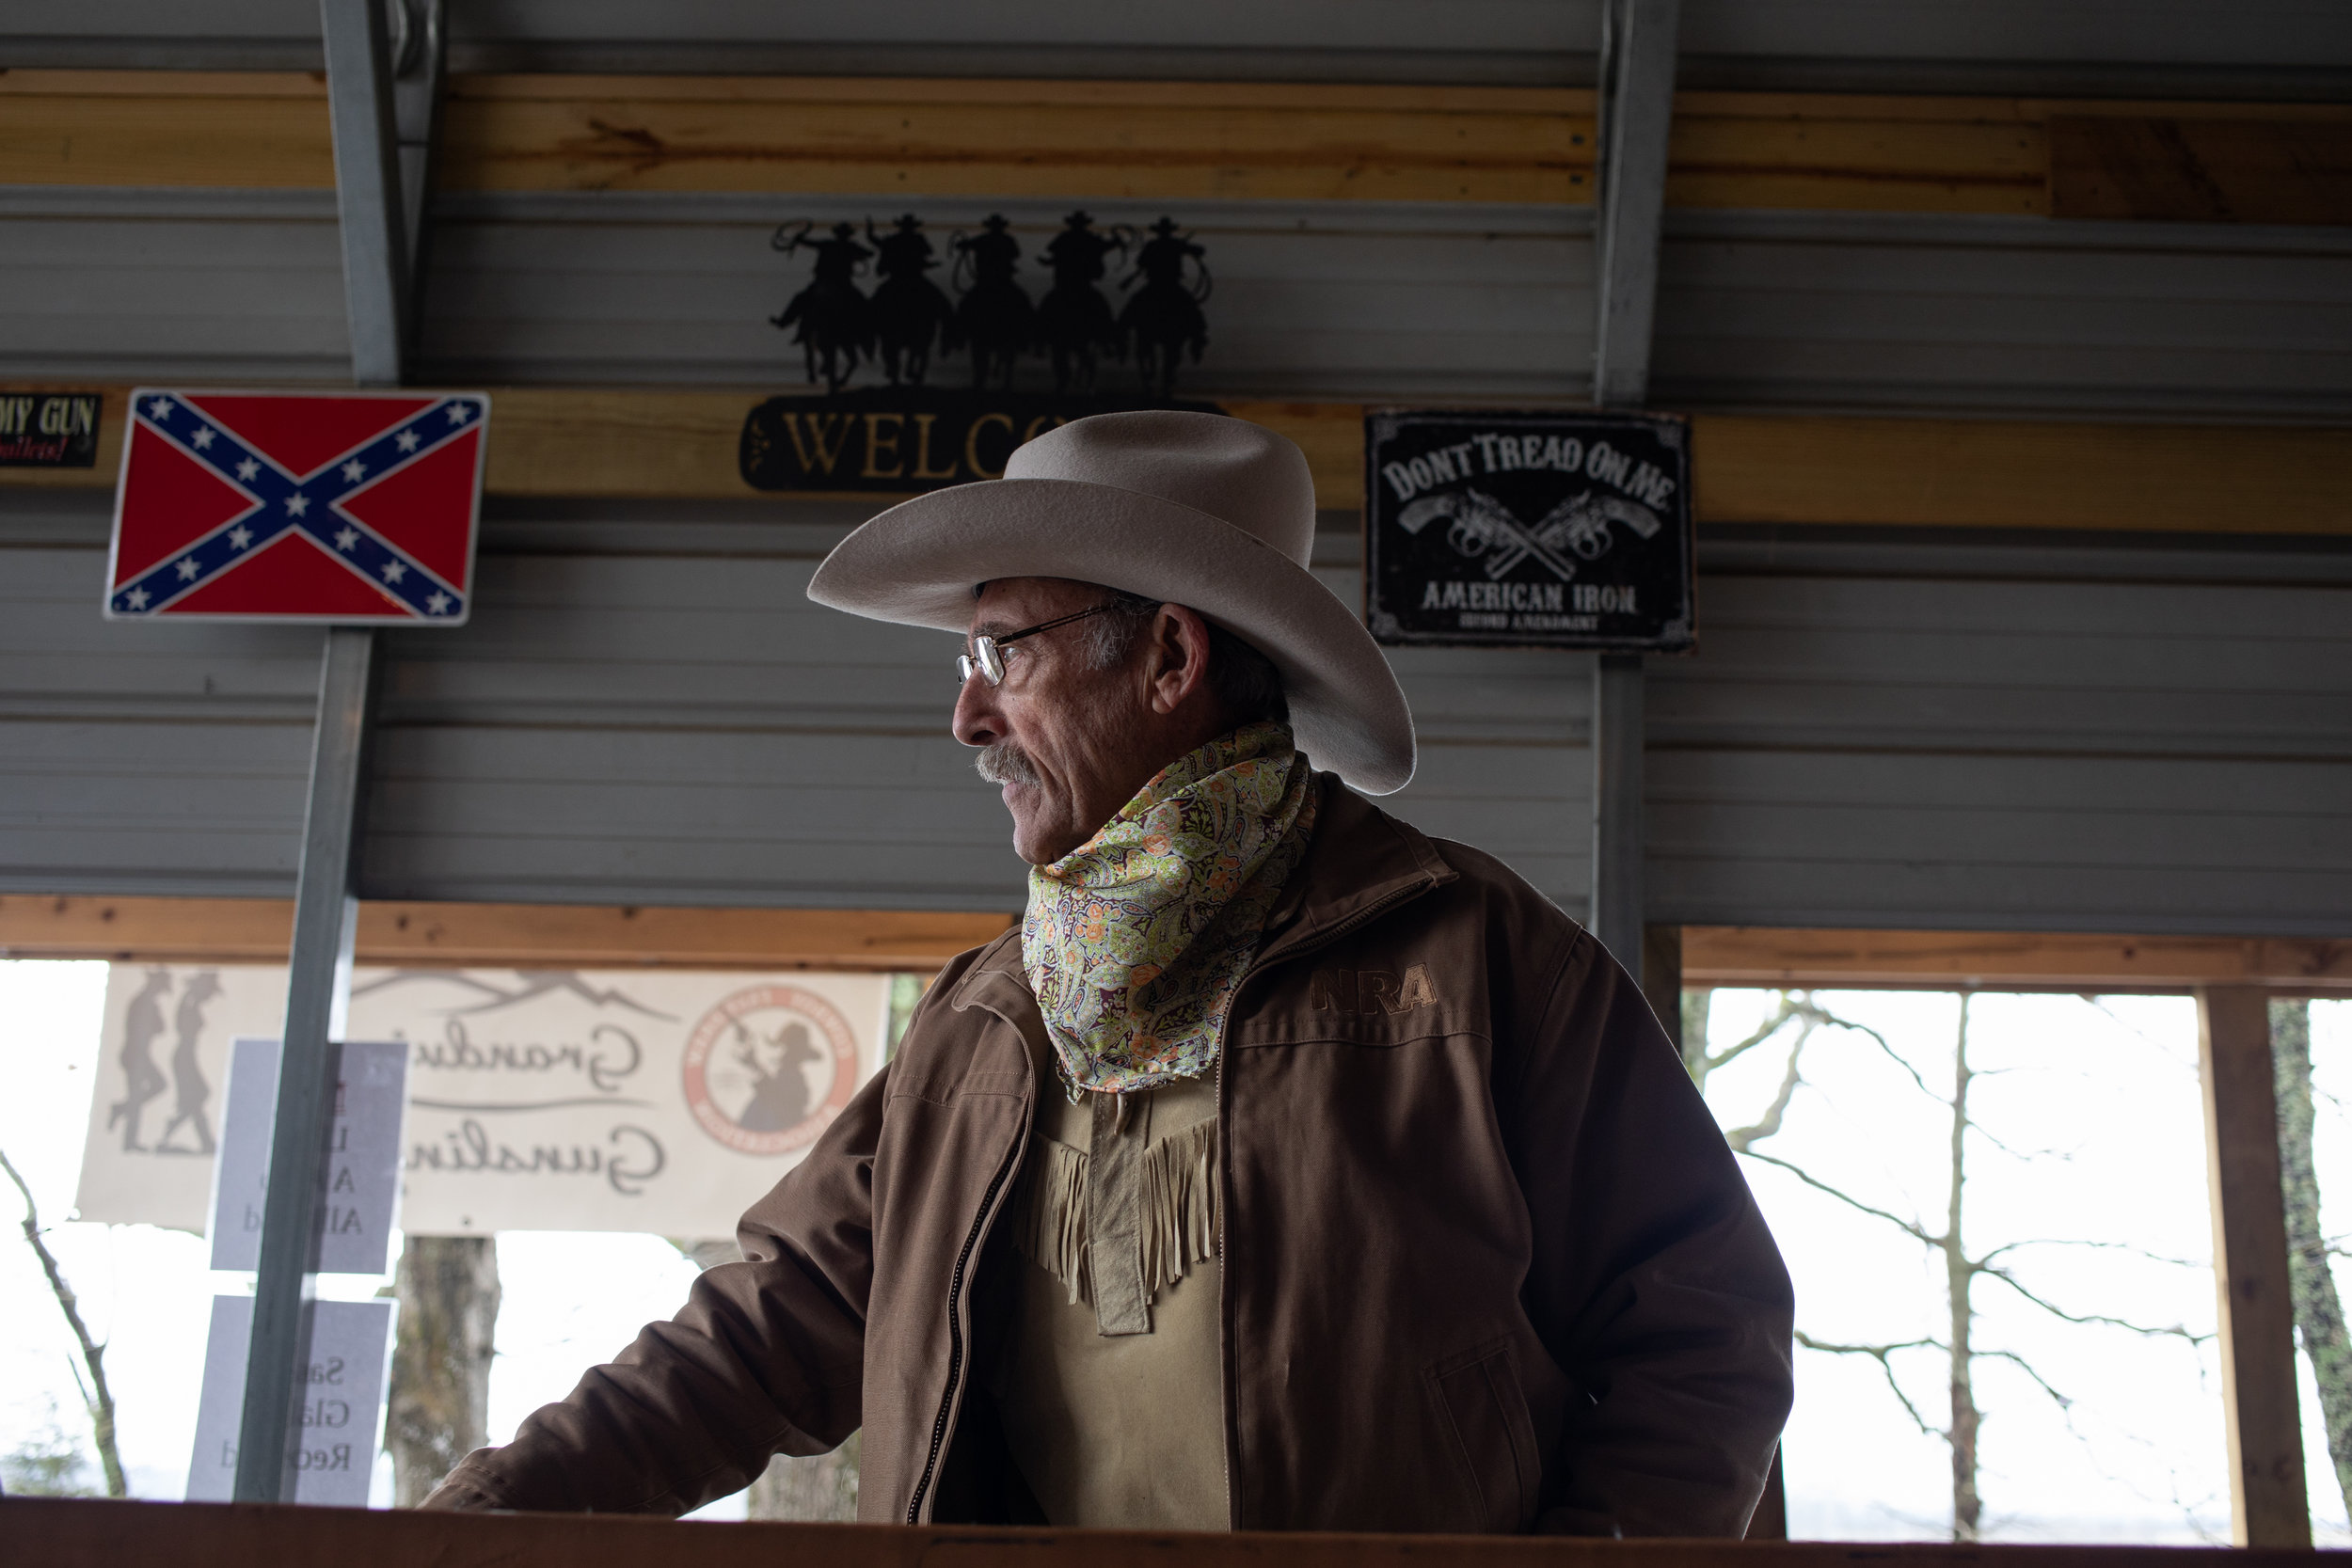 Mack Dunnavant aka Saddle Tramp looks to the judges before the first round Grandview Gunslingers Cowboy Fastdraw Tournament in Bedford, VA. The Gunslingers are a Sanctioned Club for the Cowboy Fast Draw Association with headquarters in Fallon, Nevada.